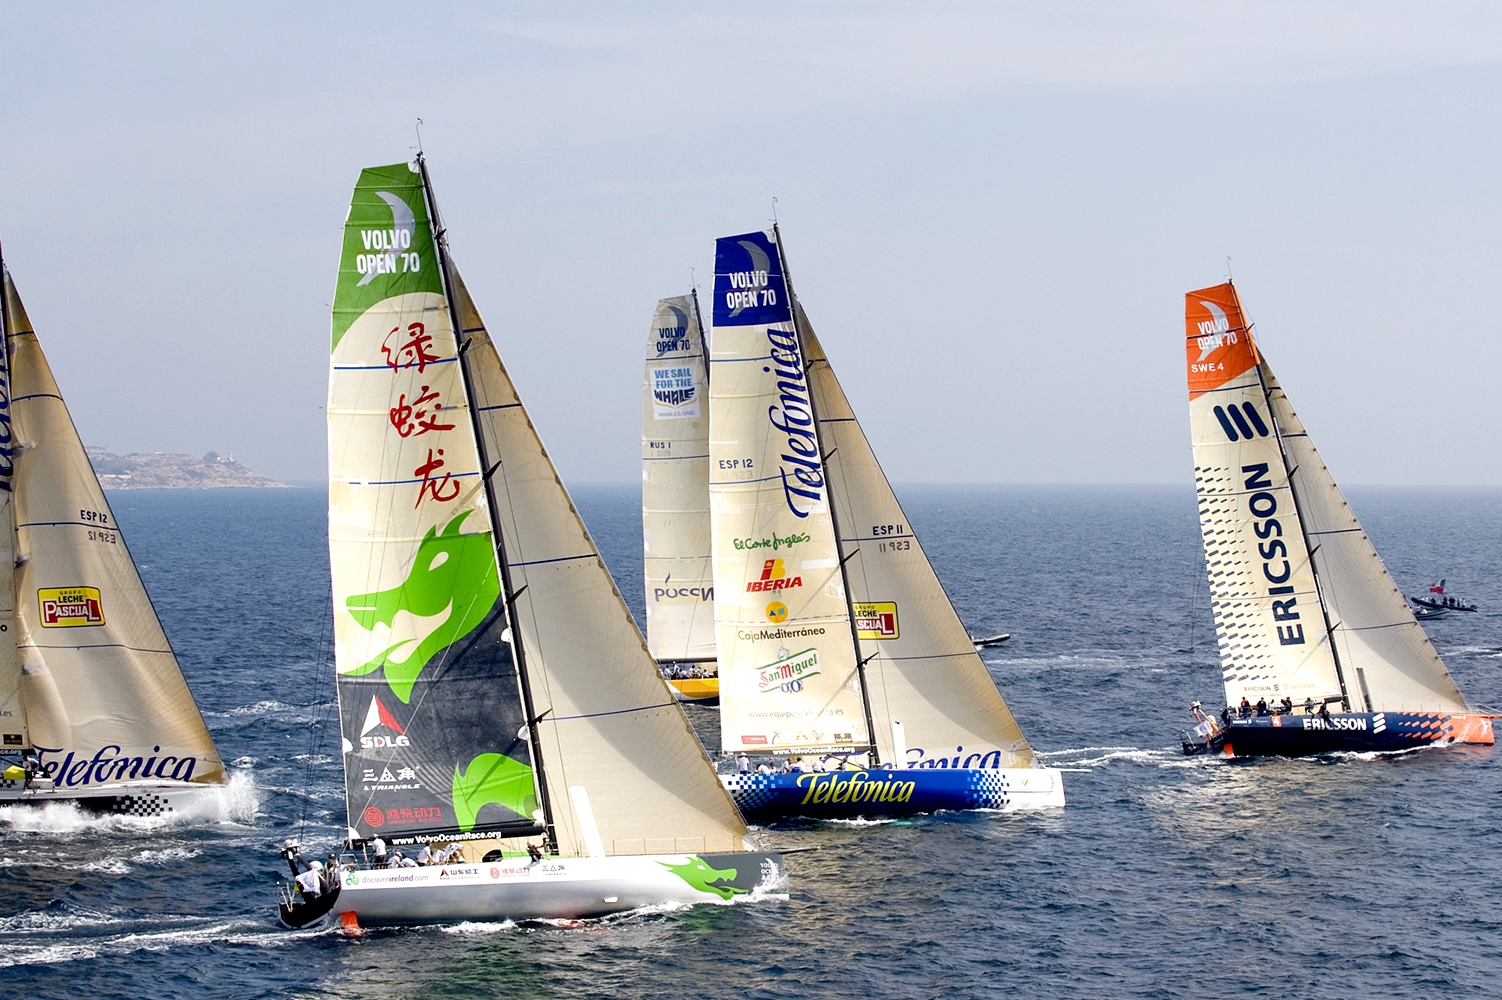 Green Dragon RP70 Volvo Ocean Race